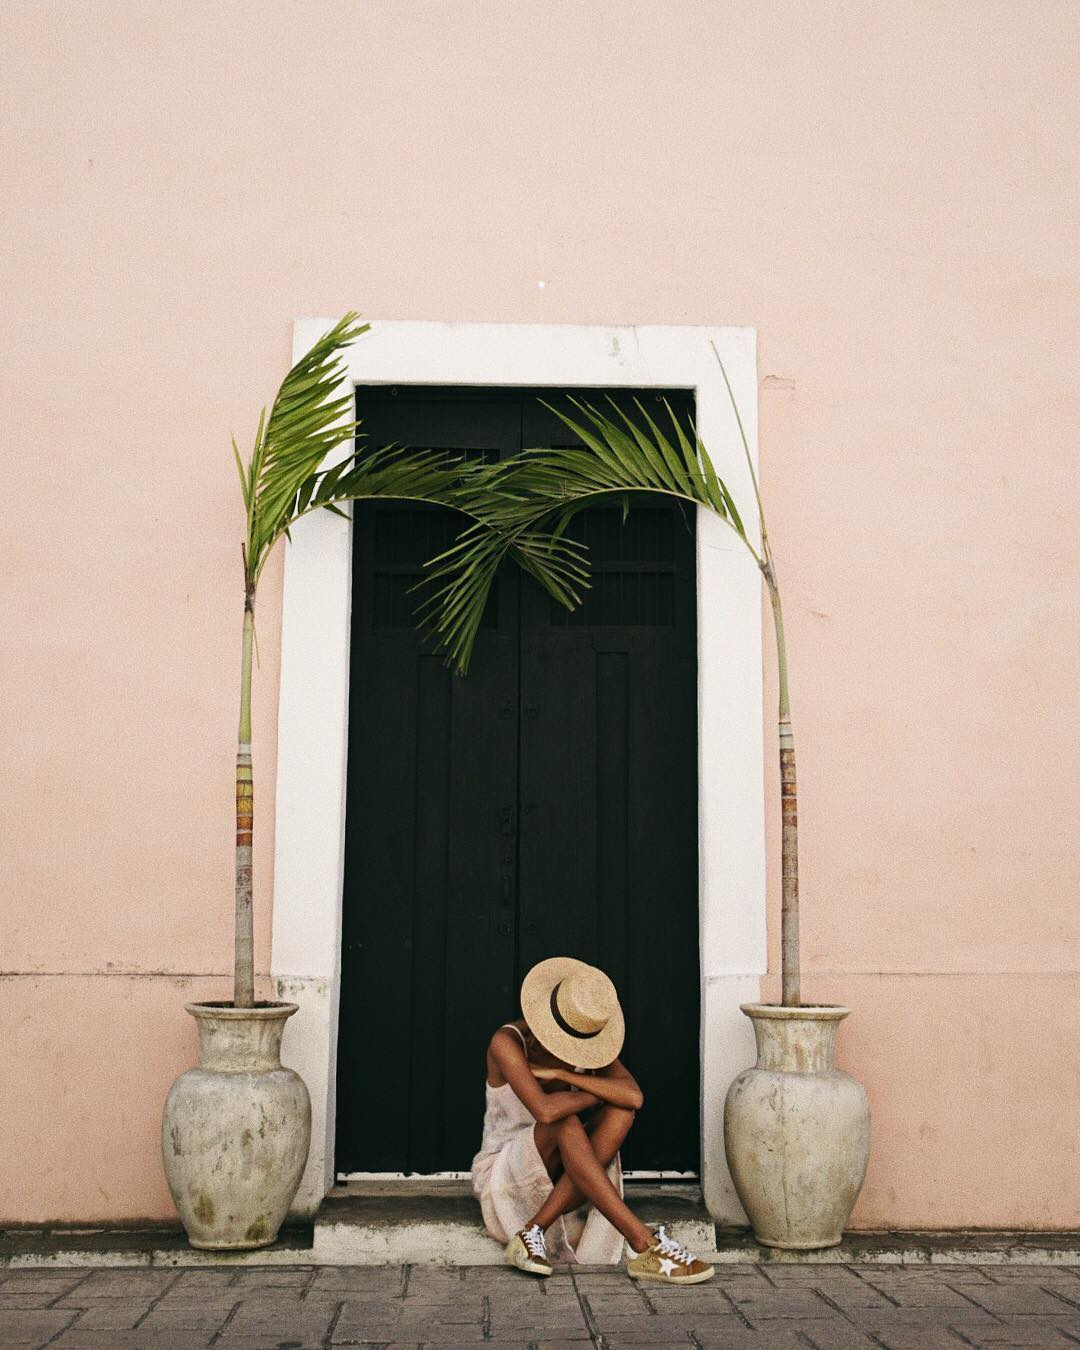 Eye Candy: Pinterest Has Us Lusting over Pretty Doors